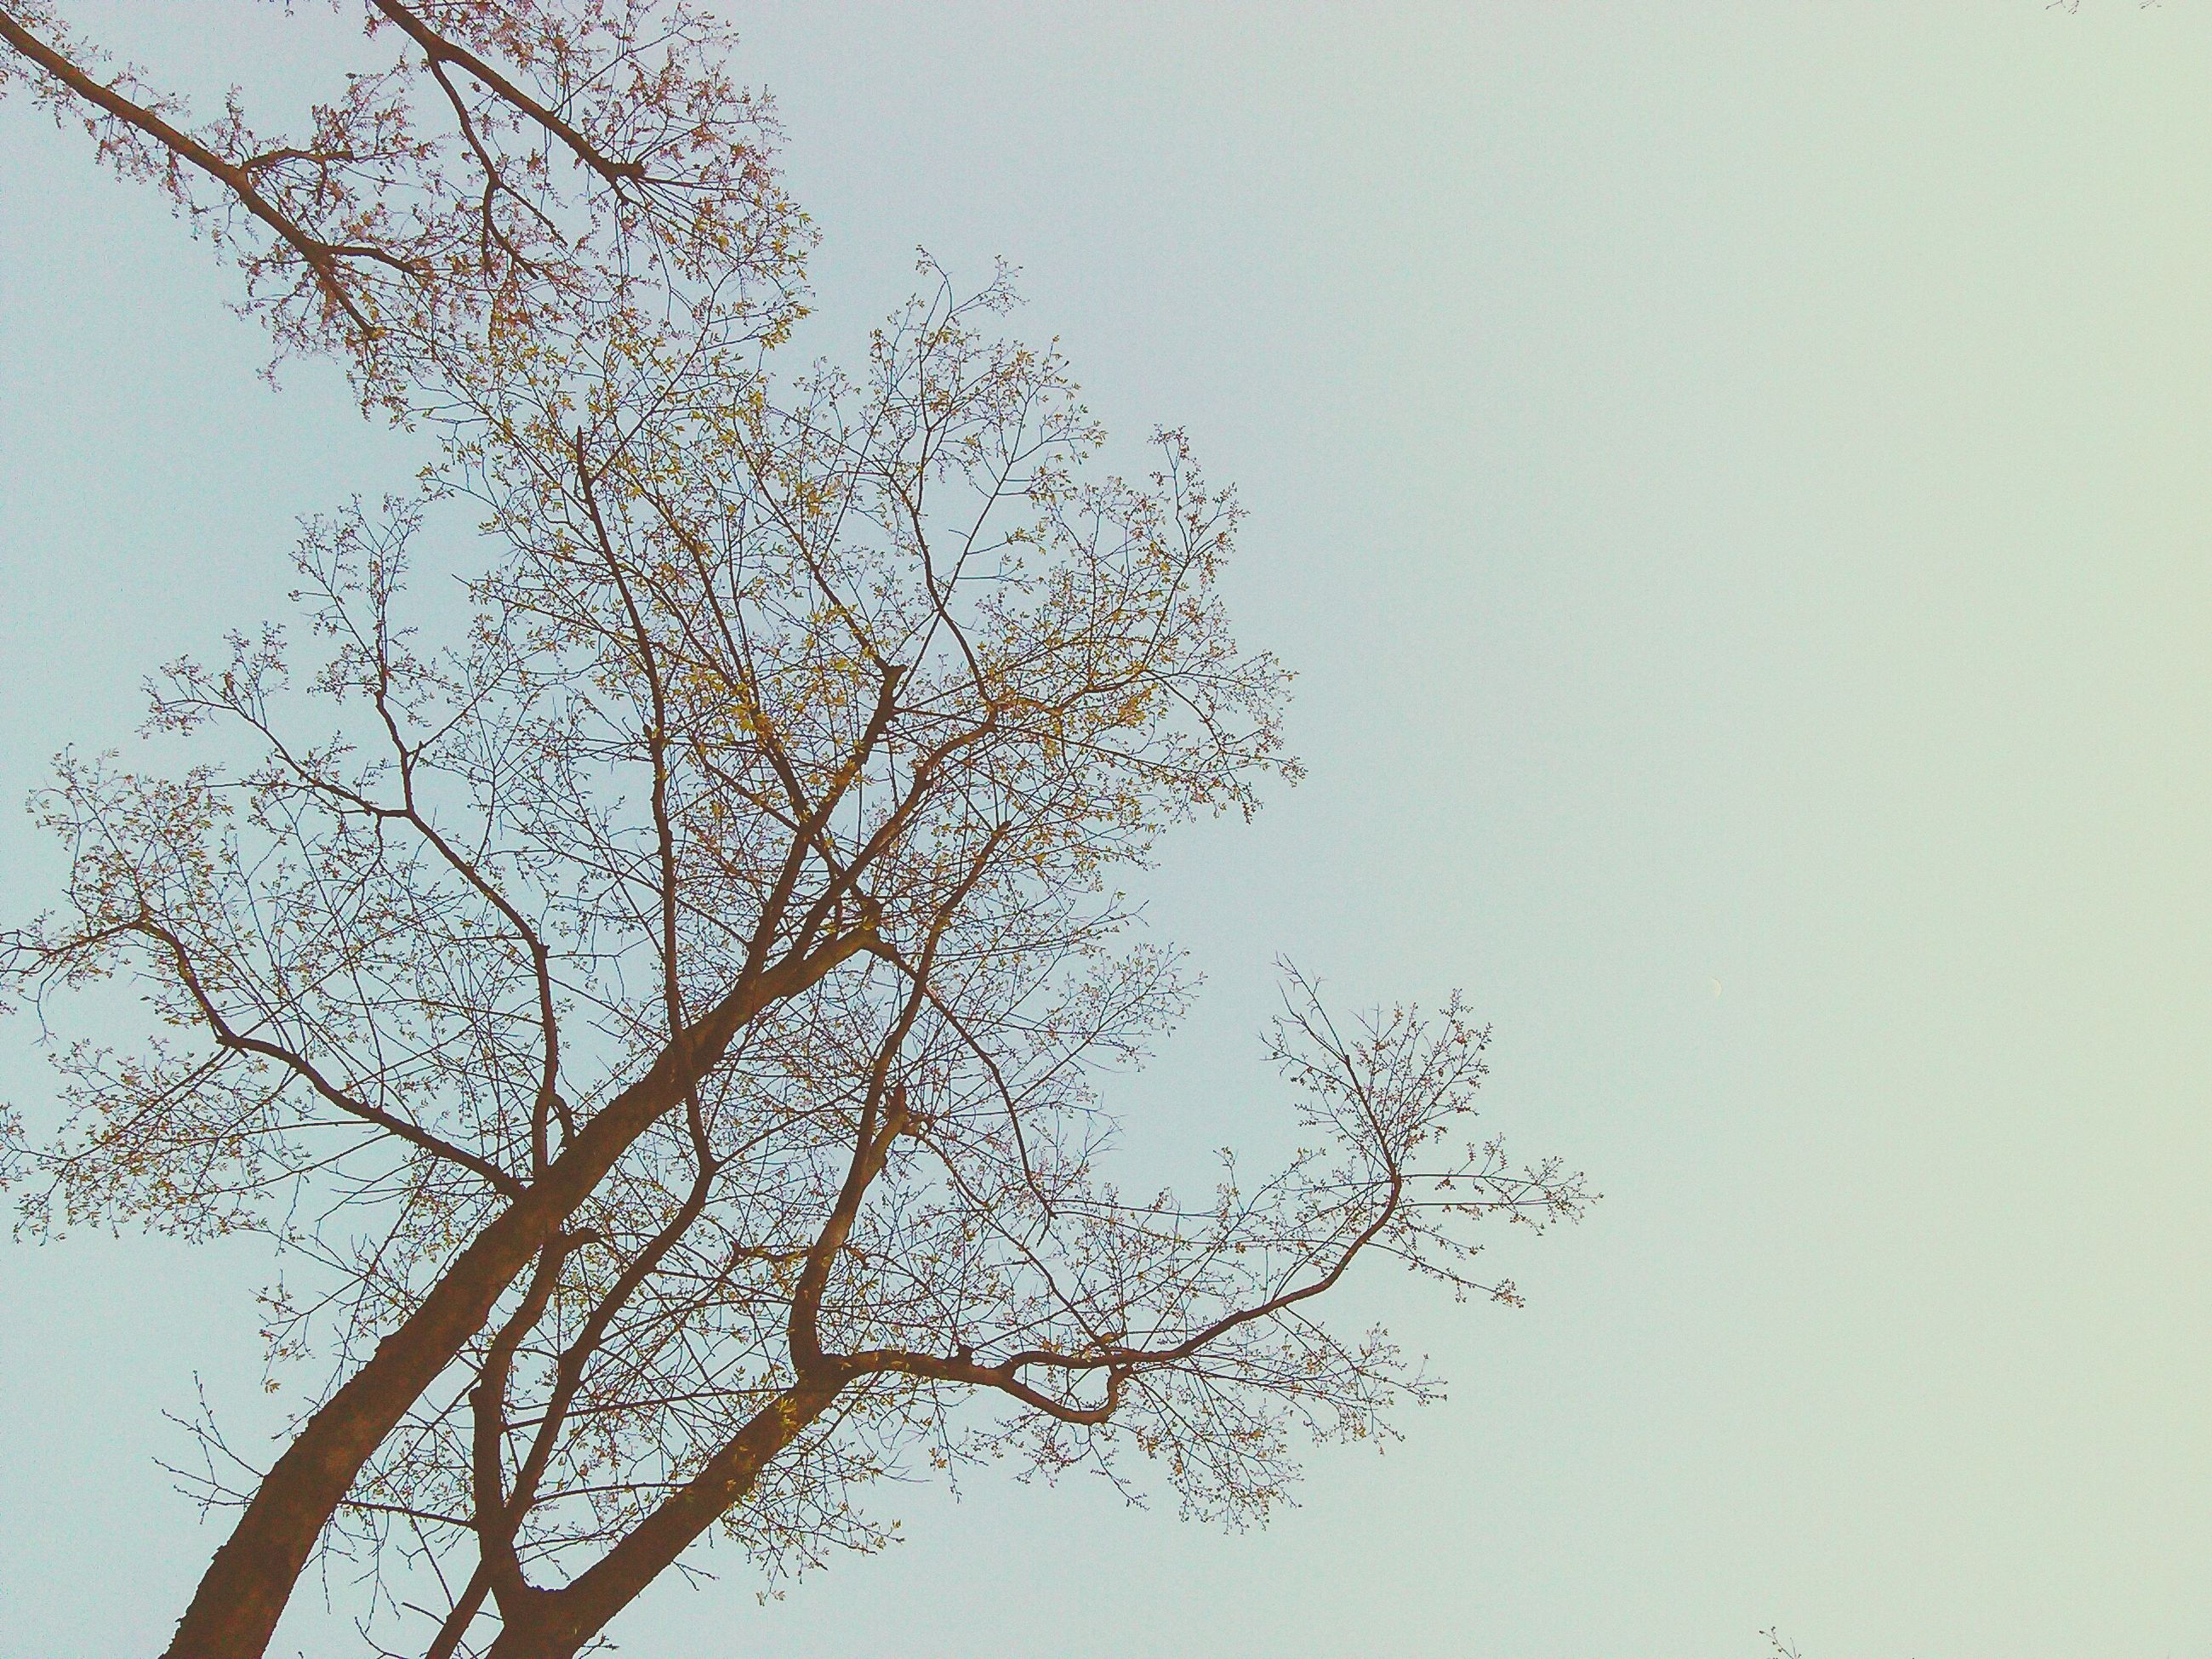 tree, branch, nature, low angle view, clear sky, beauty in nature, tranquility, no people, outdoors, growth, sky, day